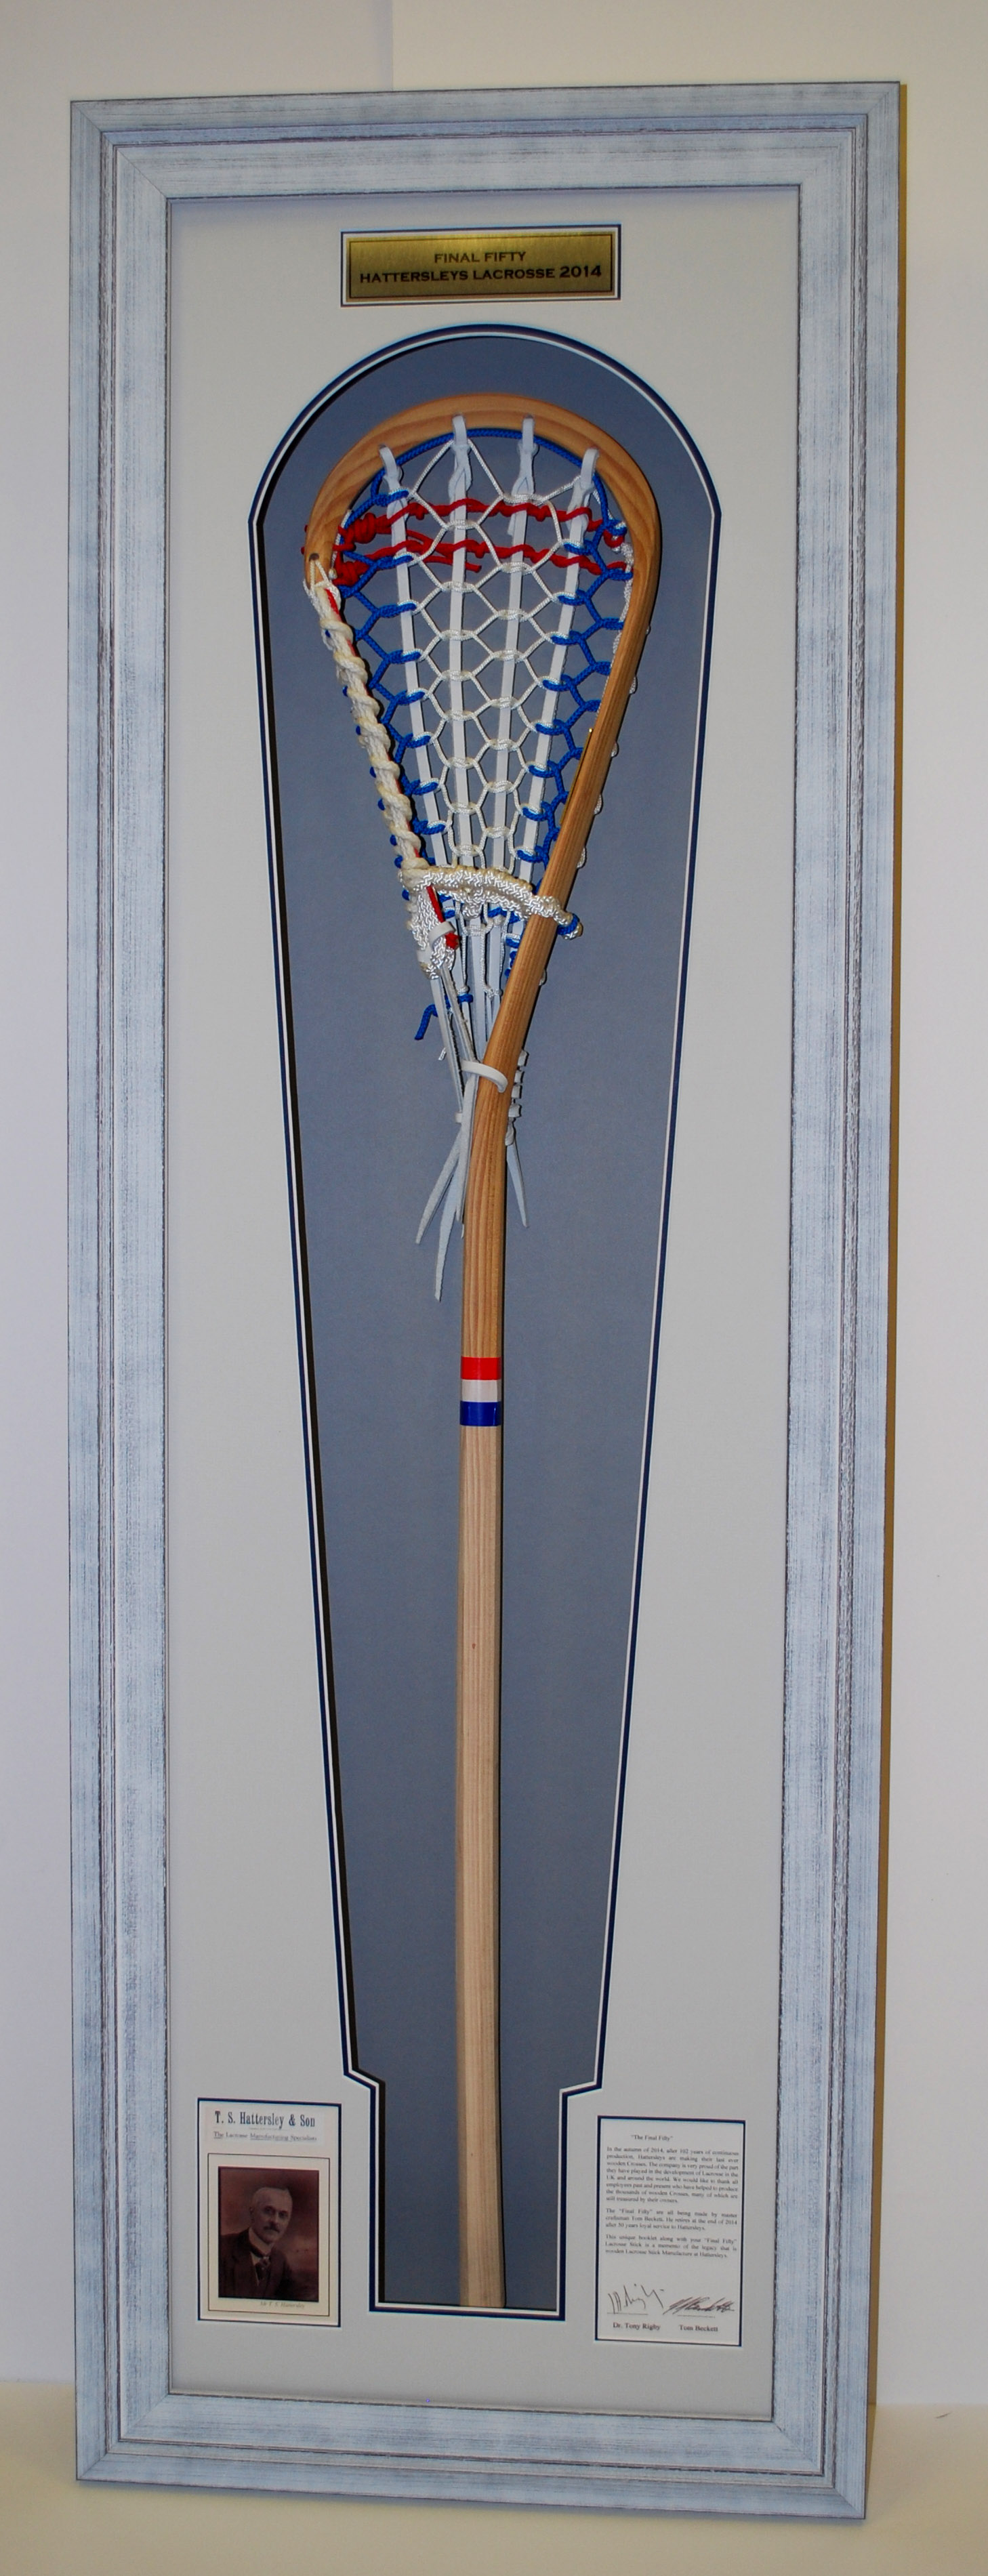 A historical lacrosse bat beautifully framed and preserved held into place with hidden fixings.